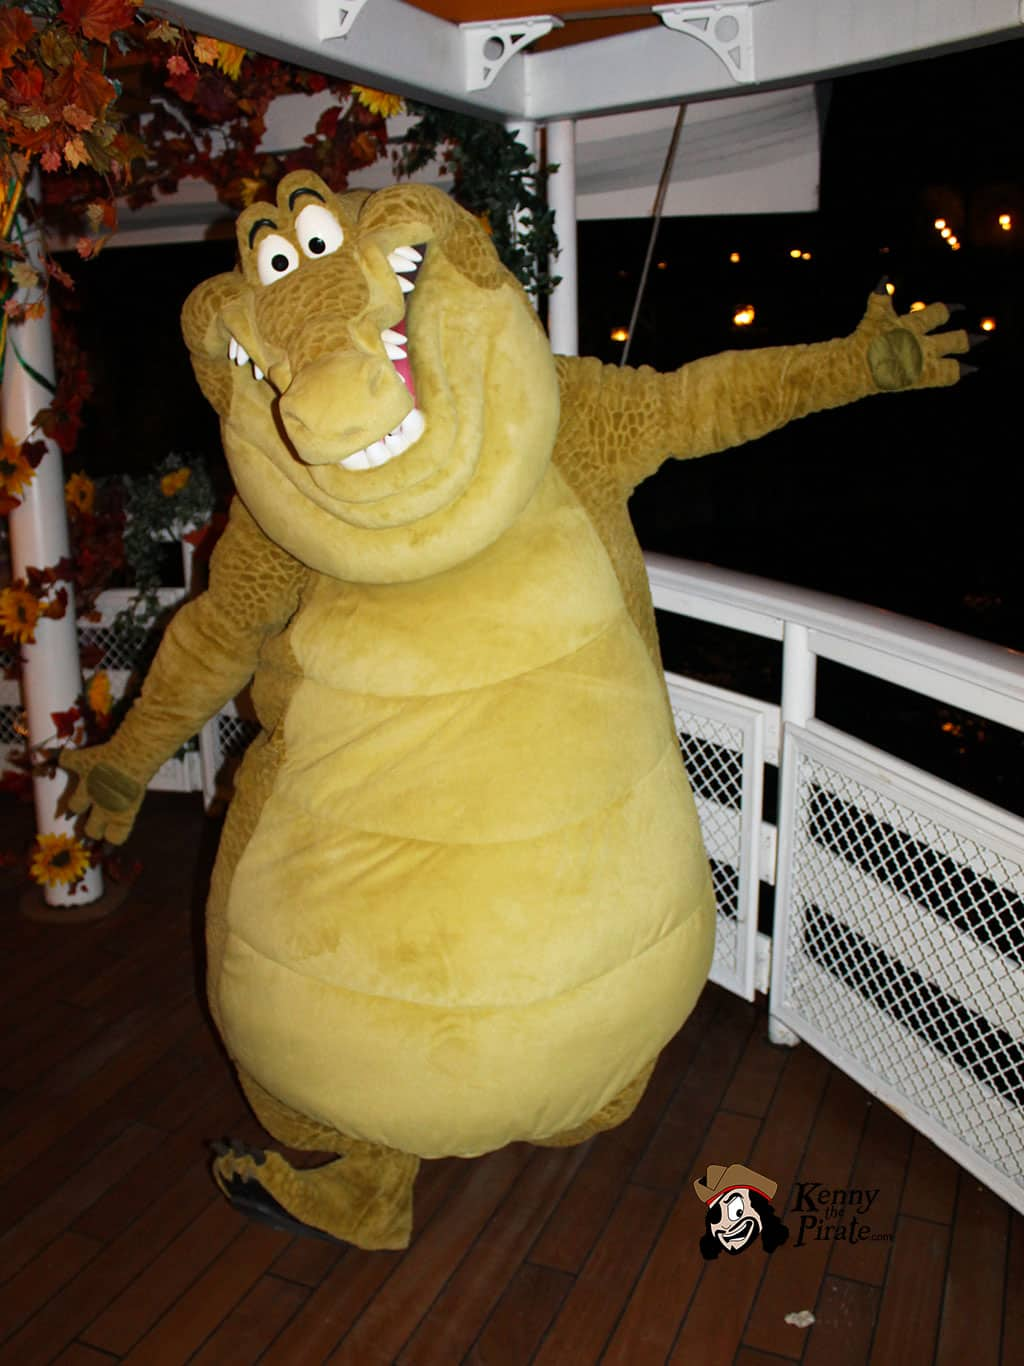 Louis the Alligator from Princess and the Frog at Disneyland Paris